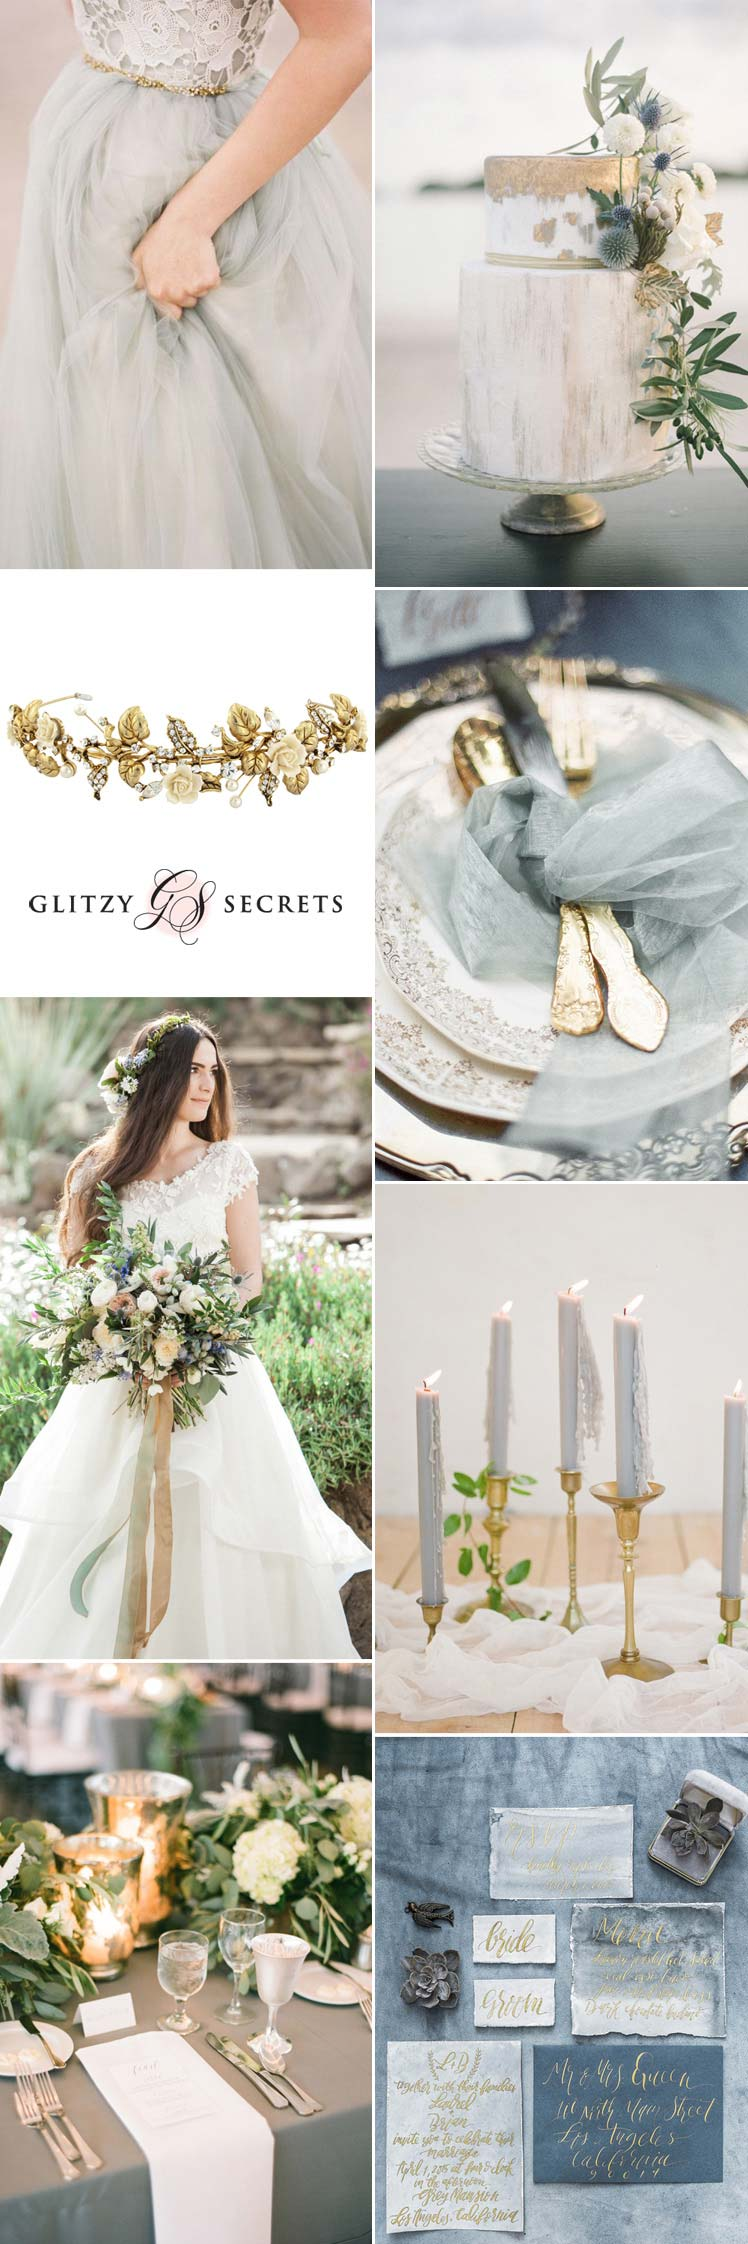 romantic grey and gold wedding ideas